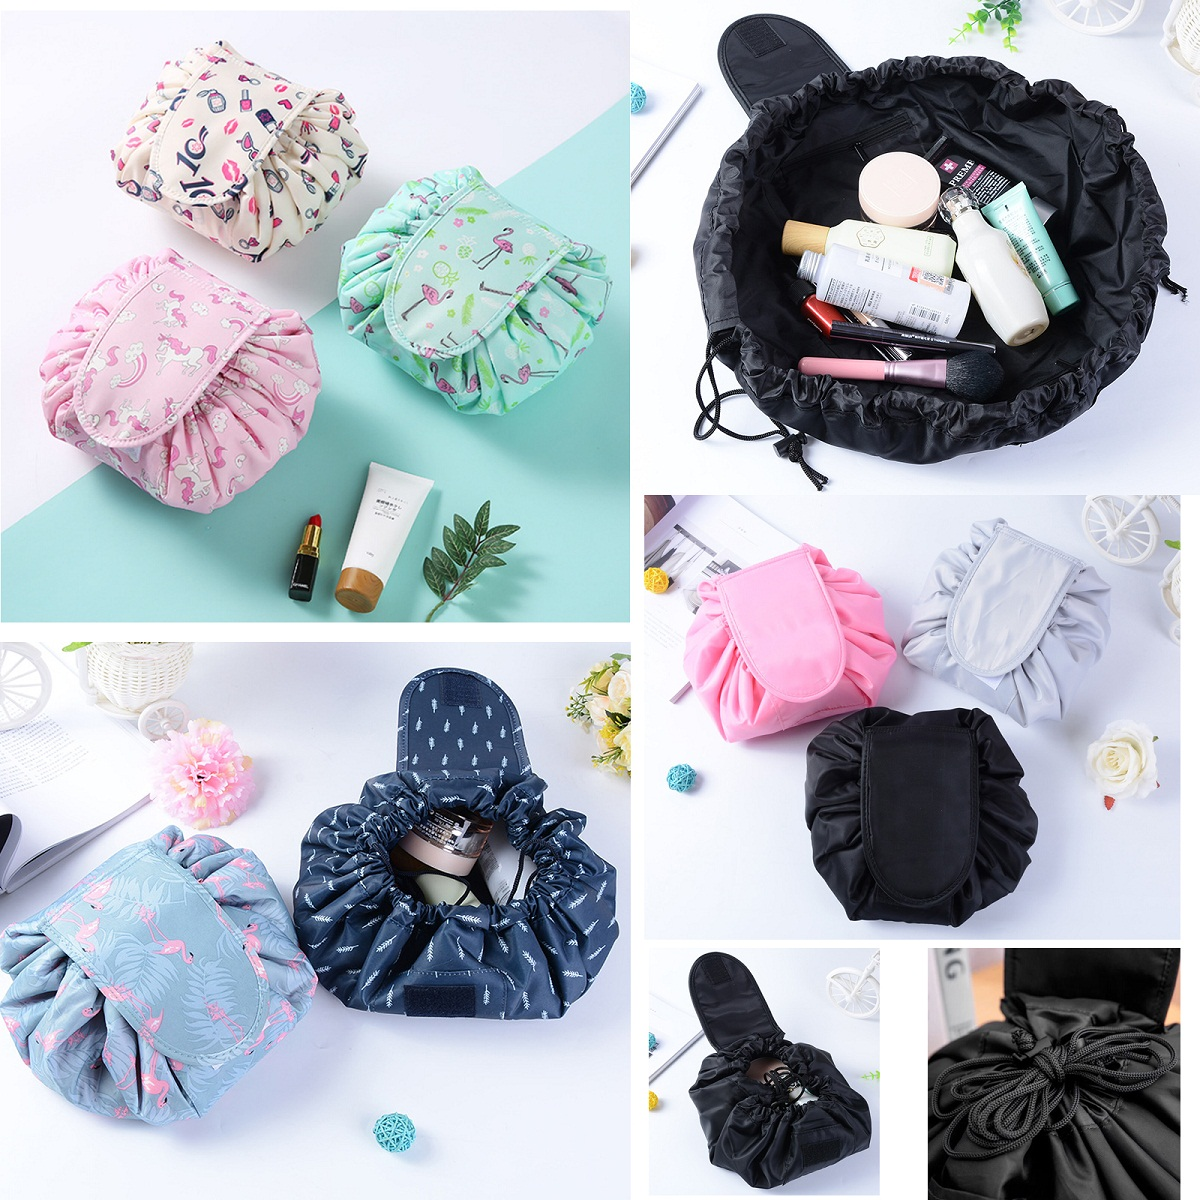 15 Colors Portability Magic Travel Pouch Cosmetic Bag Makeup Bags Storage Pouch Drawstring